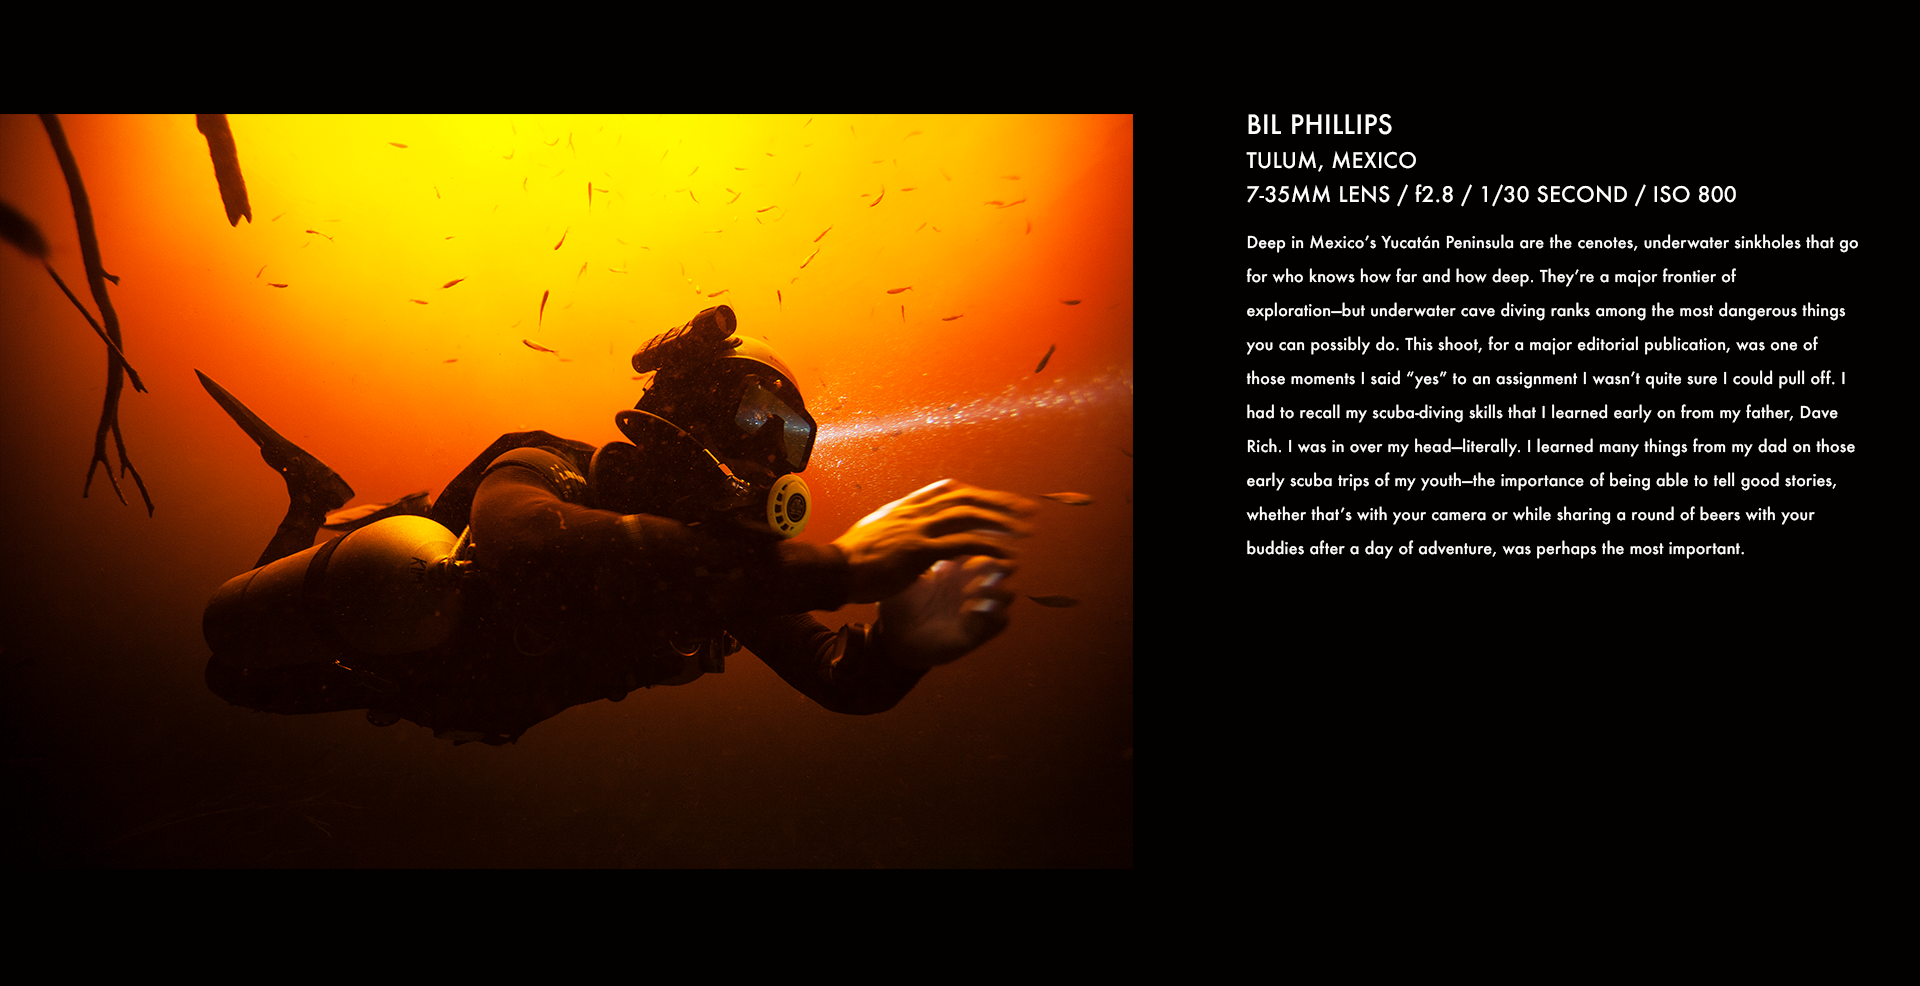 bill tulum, mexico, diving, underwater, action sports, caving, underwater cave, corey rich, stories behind the images